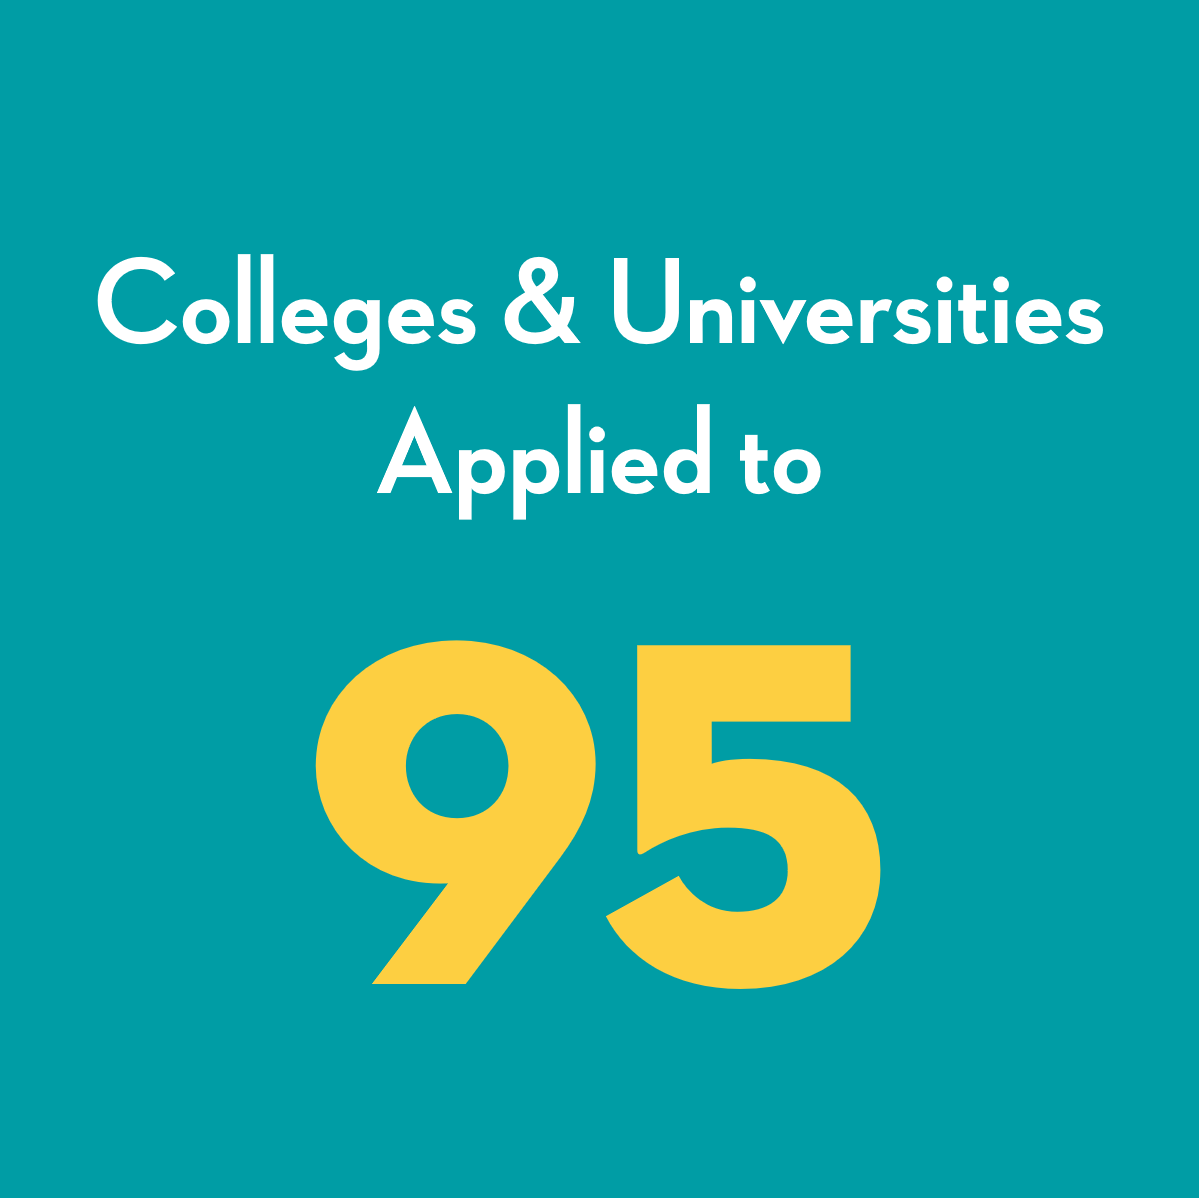 Students applied to 95 colleges and universities